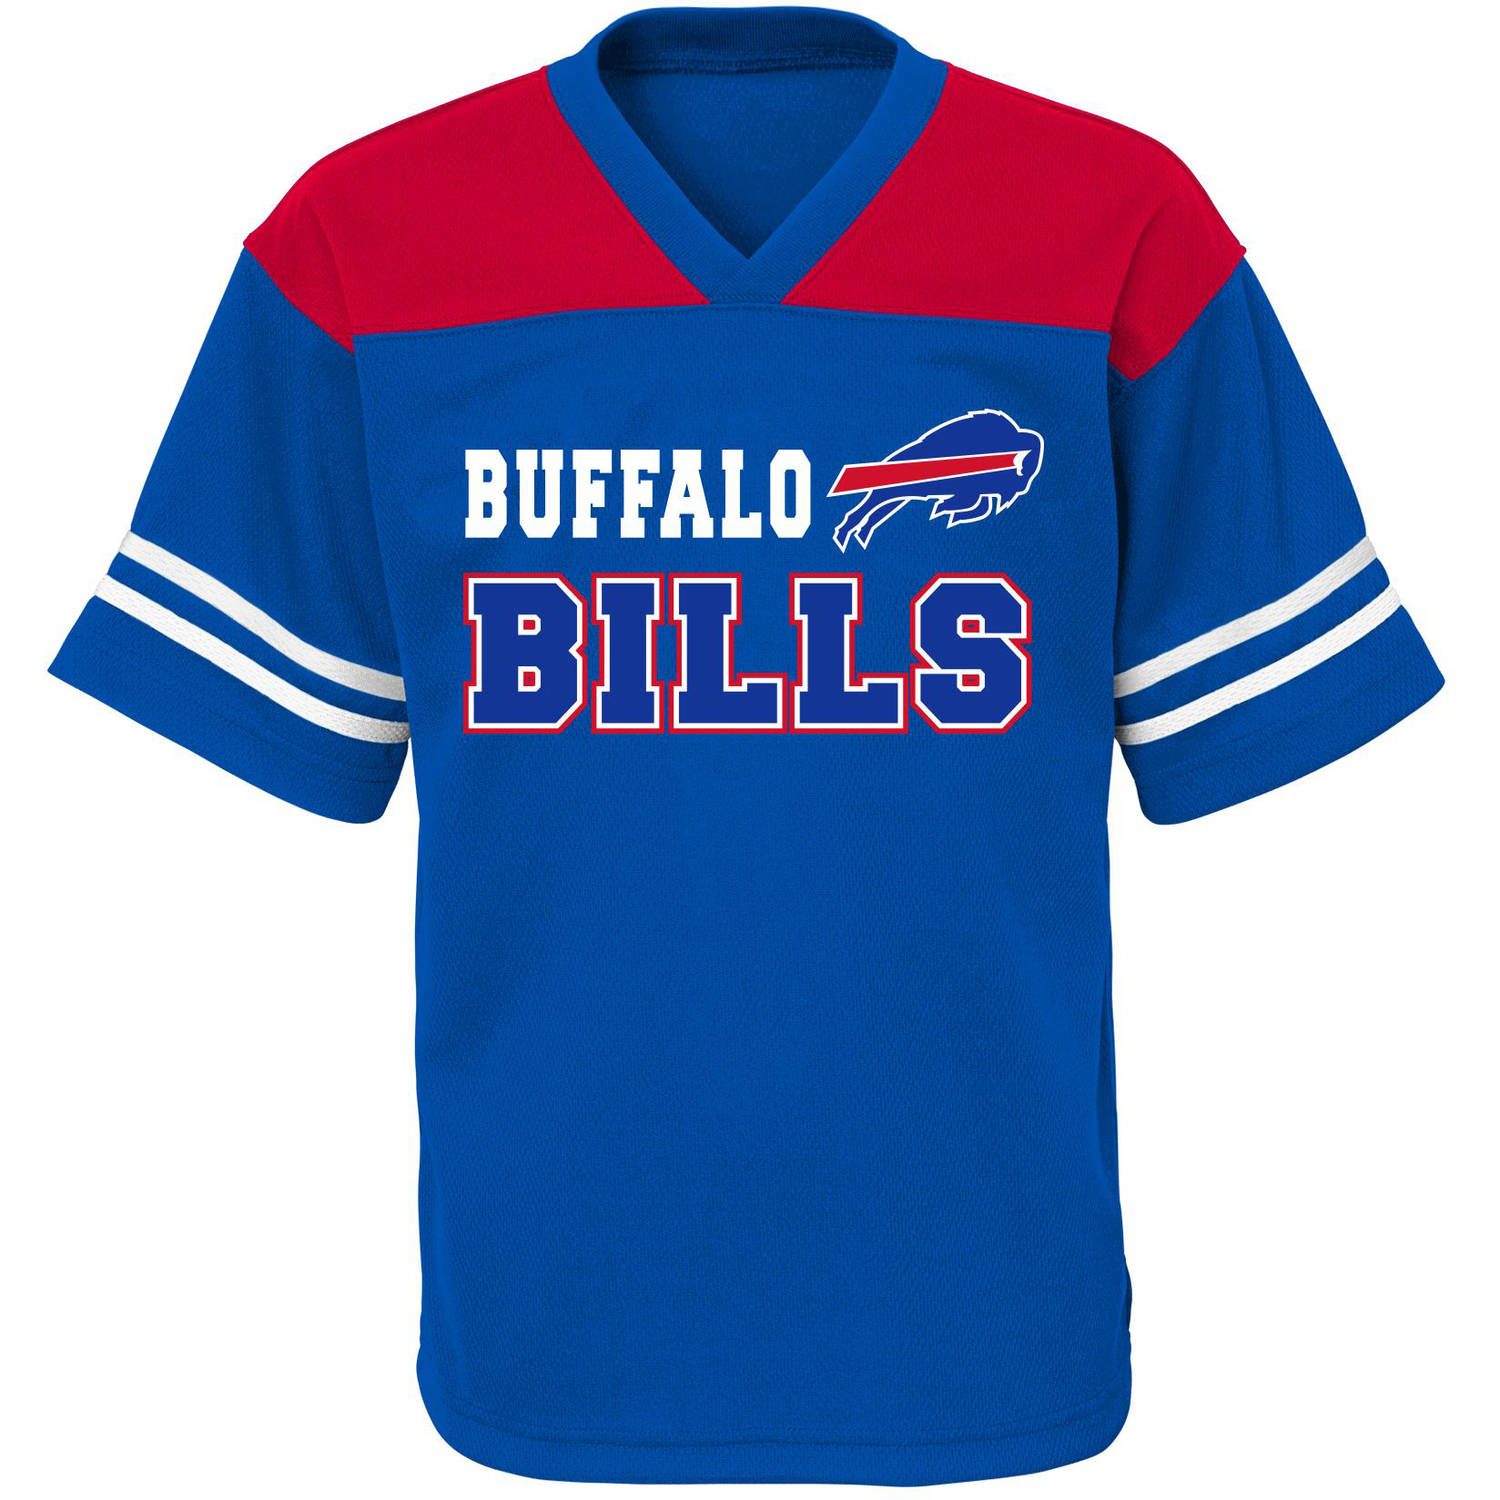 NFL Boys' Buffalo Bills Short Sleeve Mesh Team Top